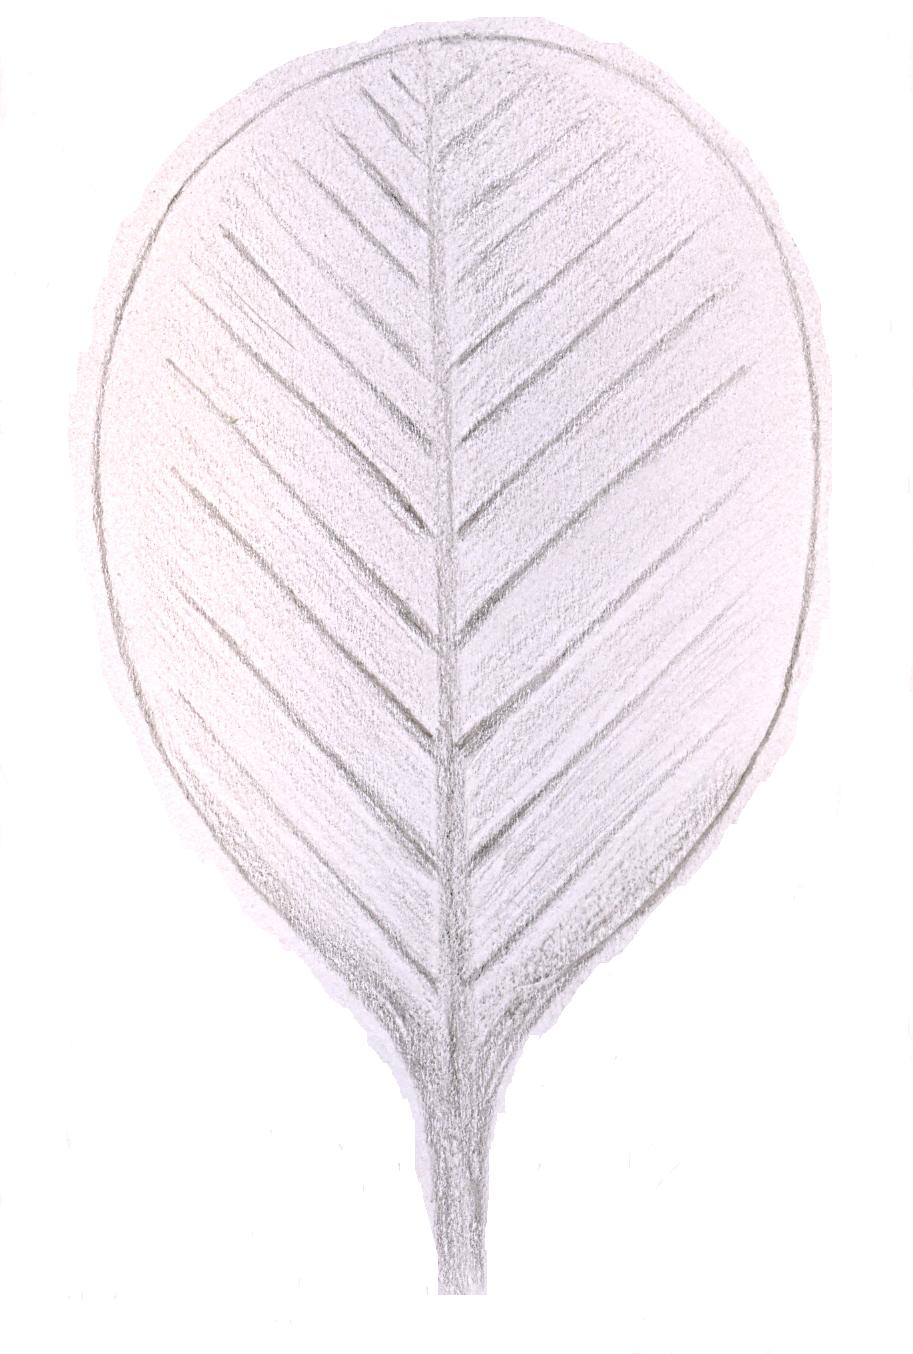 obovate_leaf[1]